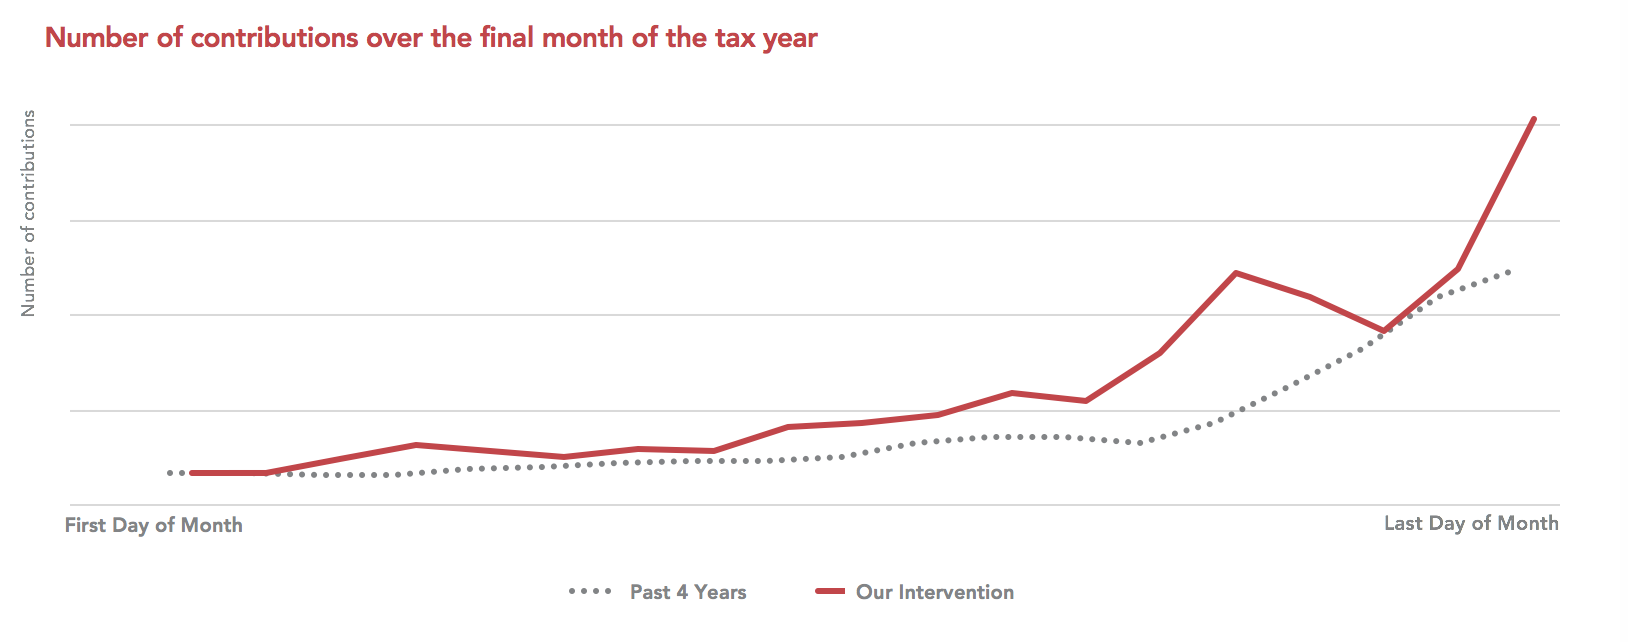 Tax contributions